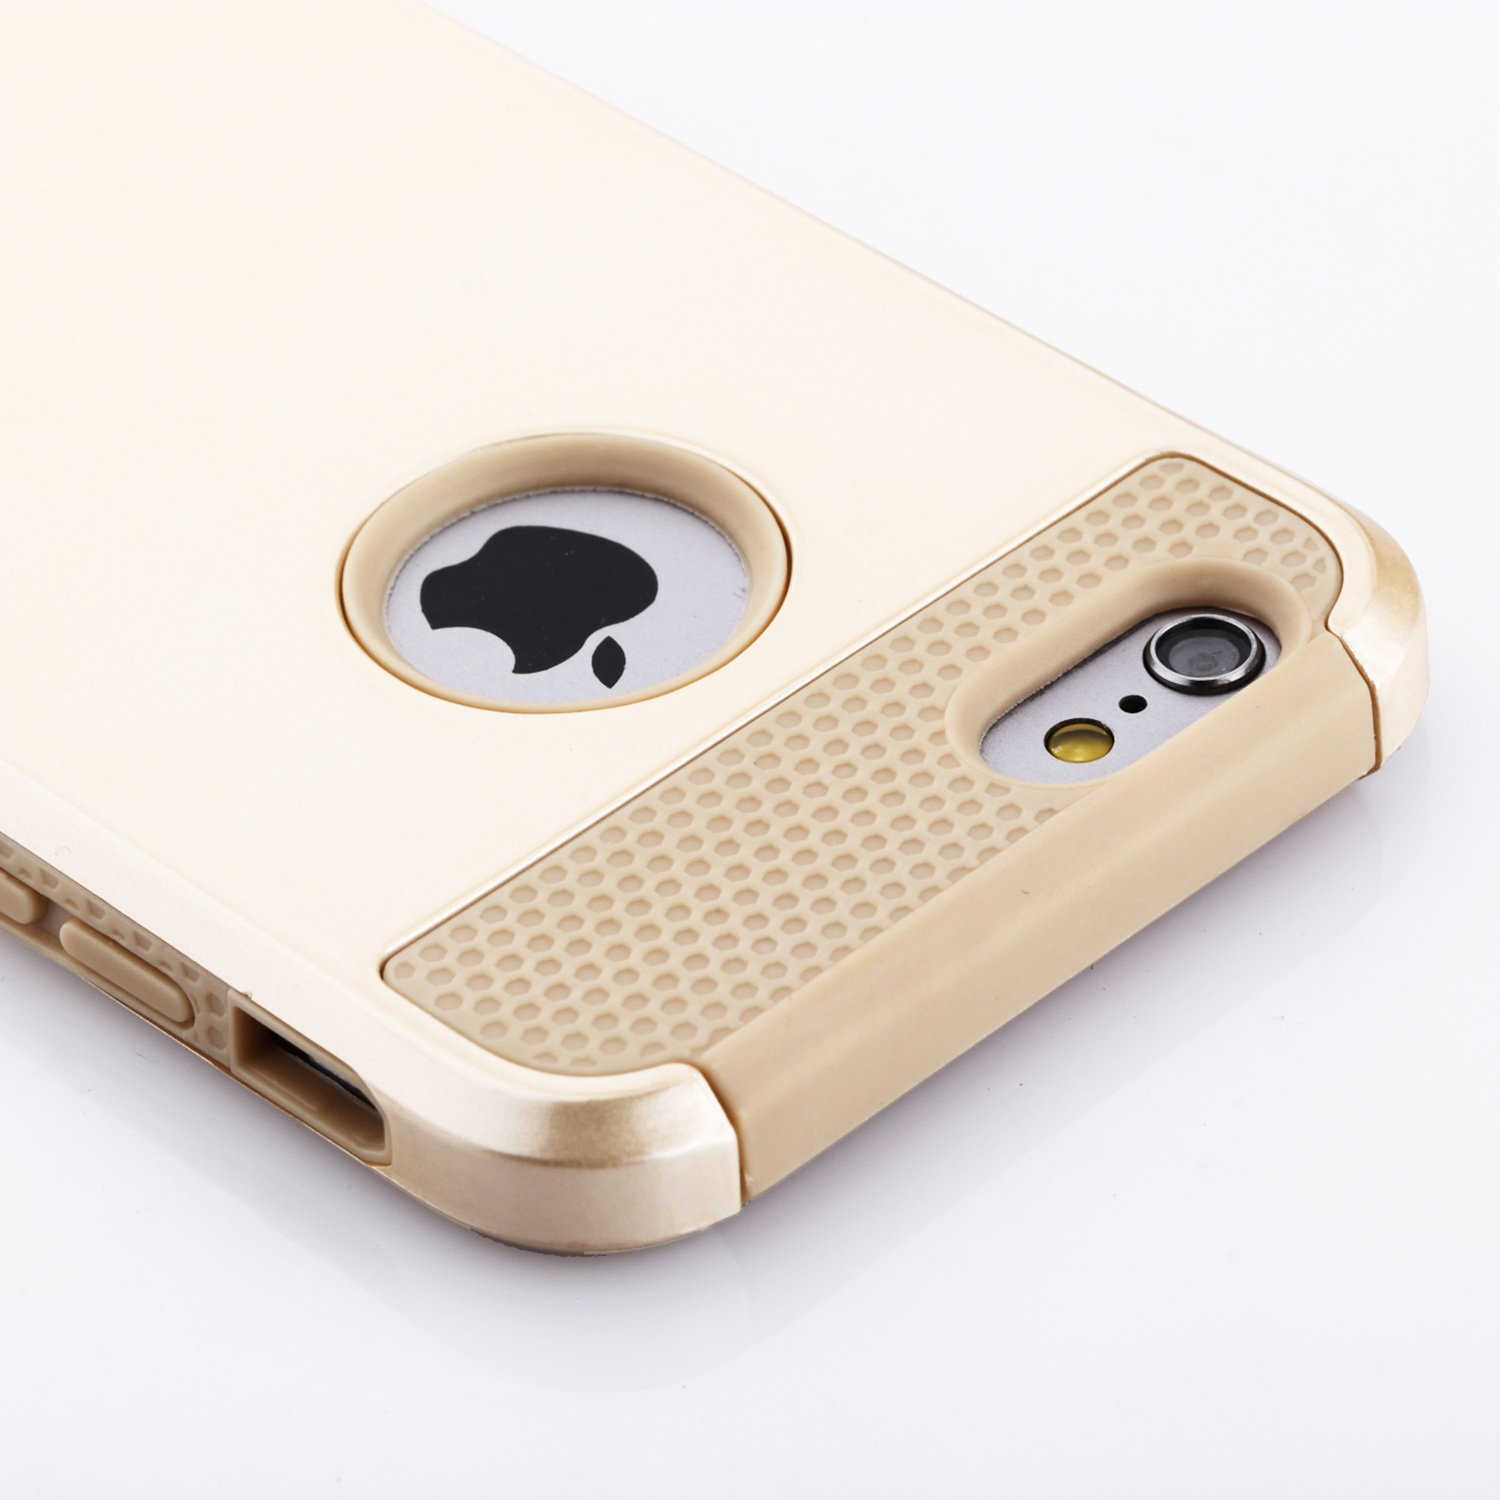 best sneakers dd746 99fb1 iPhone 6S Gold Case, technext020 Non-Slip iPhone 6 6S Case Hard Plastic  Silicone Protective Case Rubber Bumper Slim Heavy Duty Dual Layer Gold  Cover ...